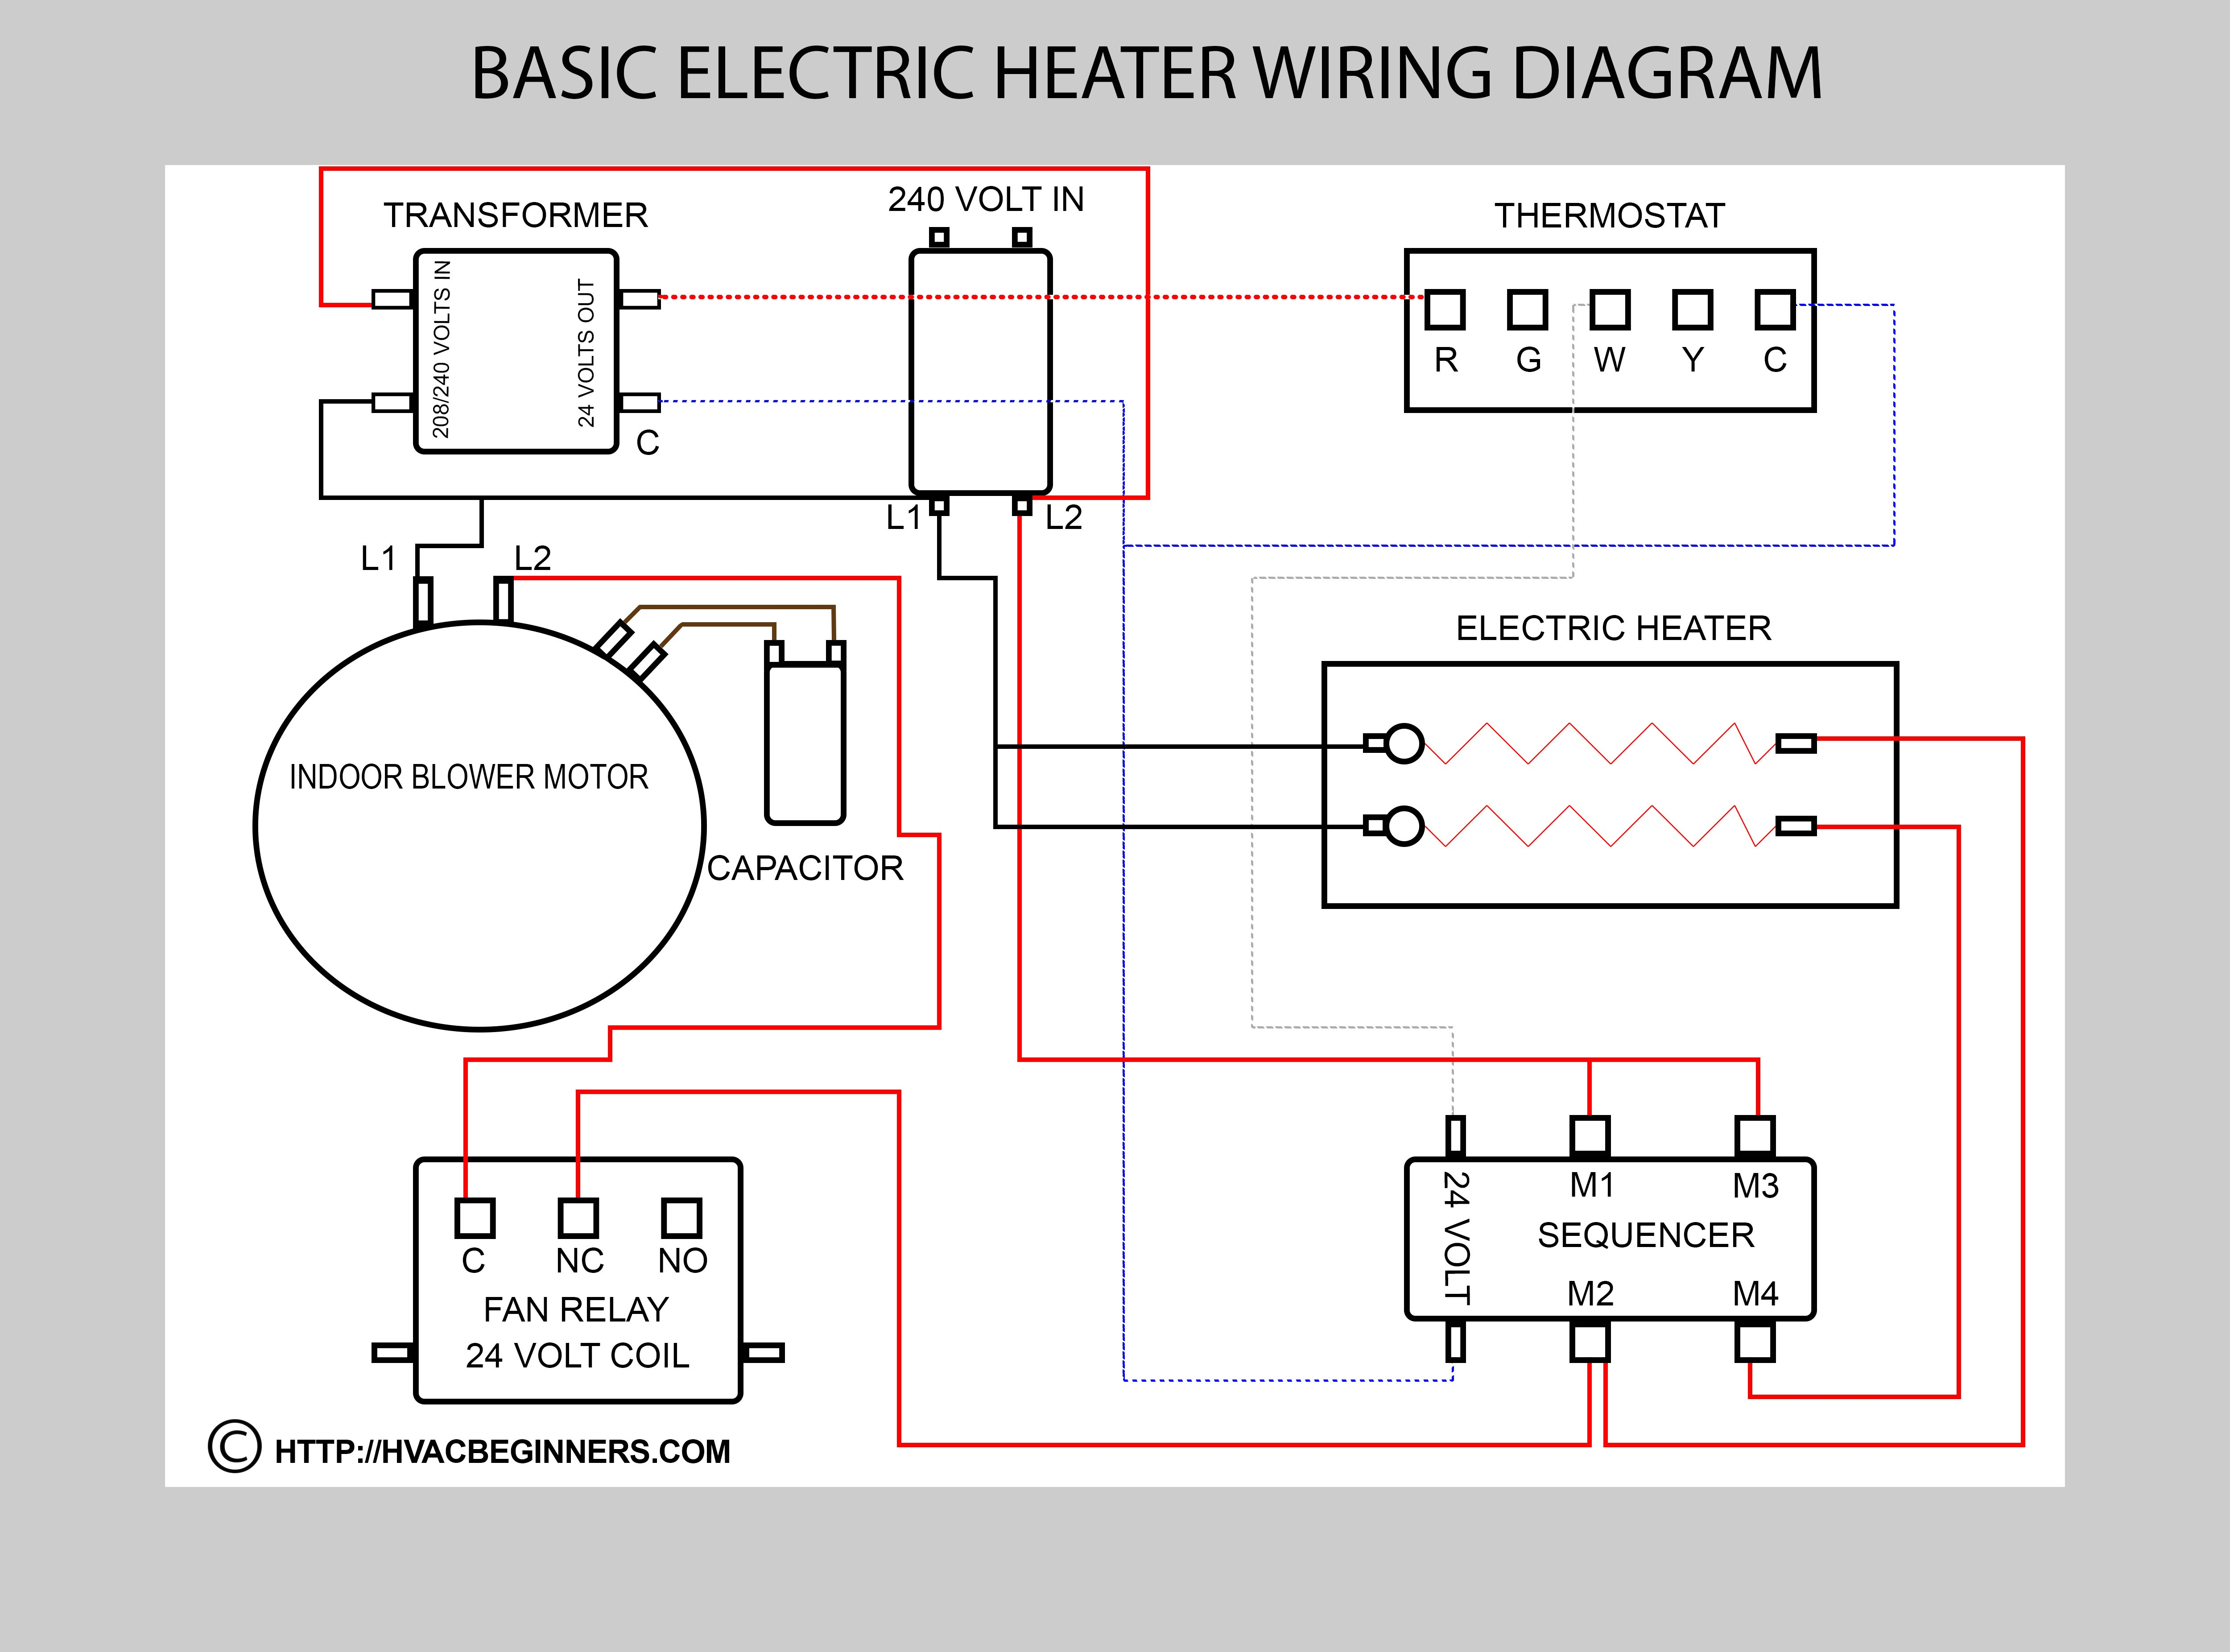 ELECTRICHEATERWIRED york rooftop unit wiring diagram york air handler wiring diagram  at mifinder.co